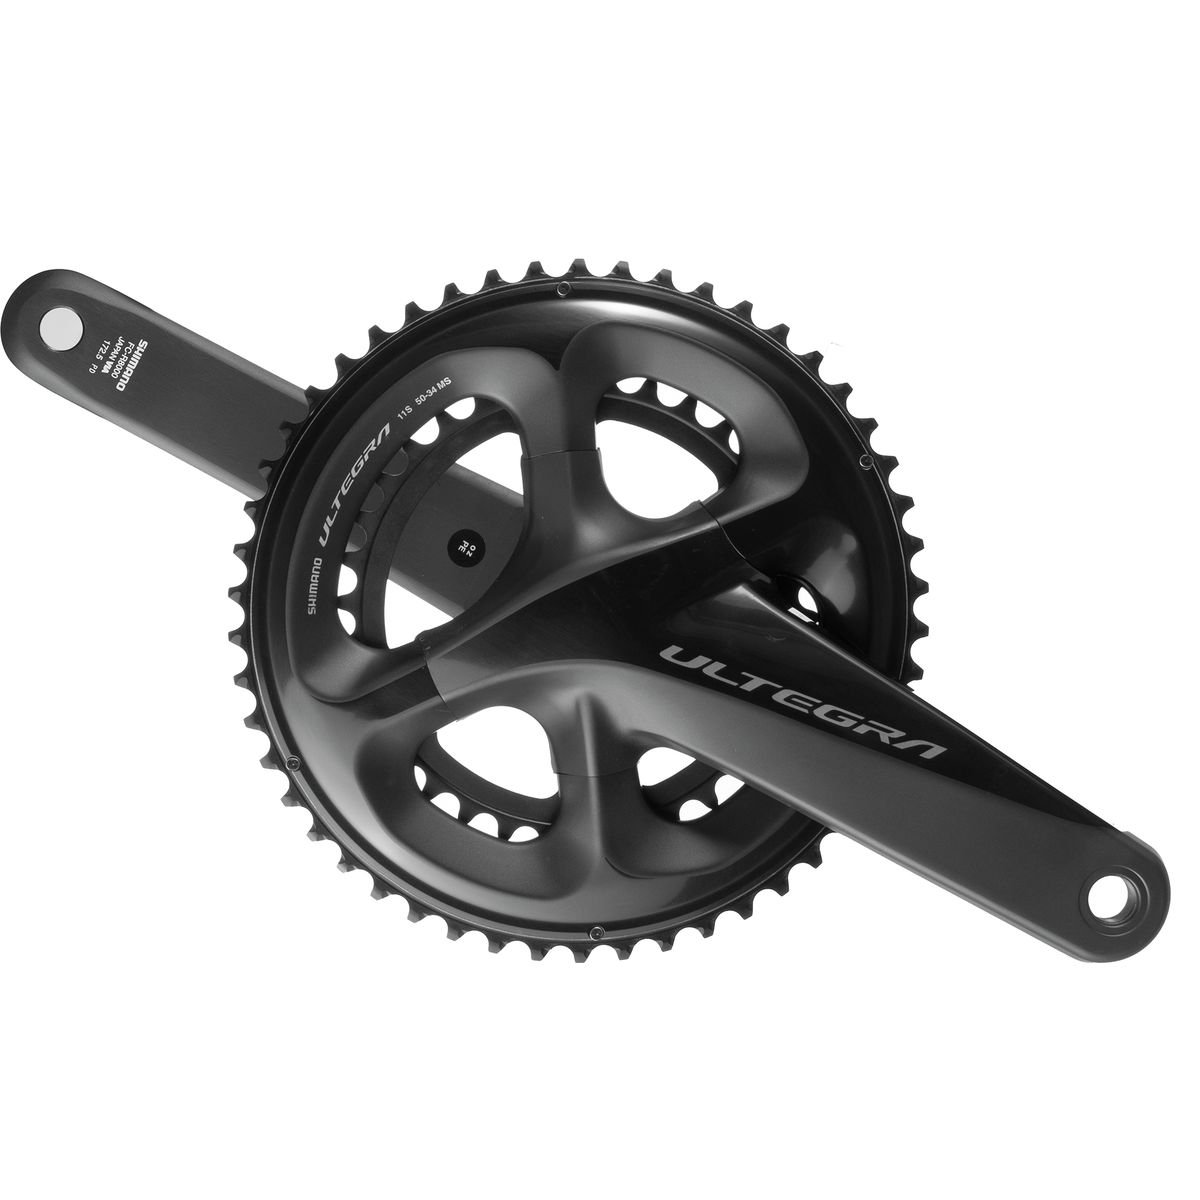 Shimano Ultegra R8000 11-Speed 165mm 36//52t Crankset